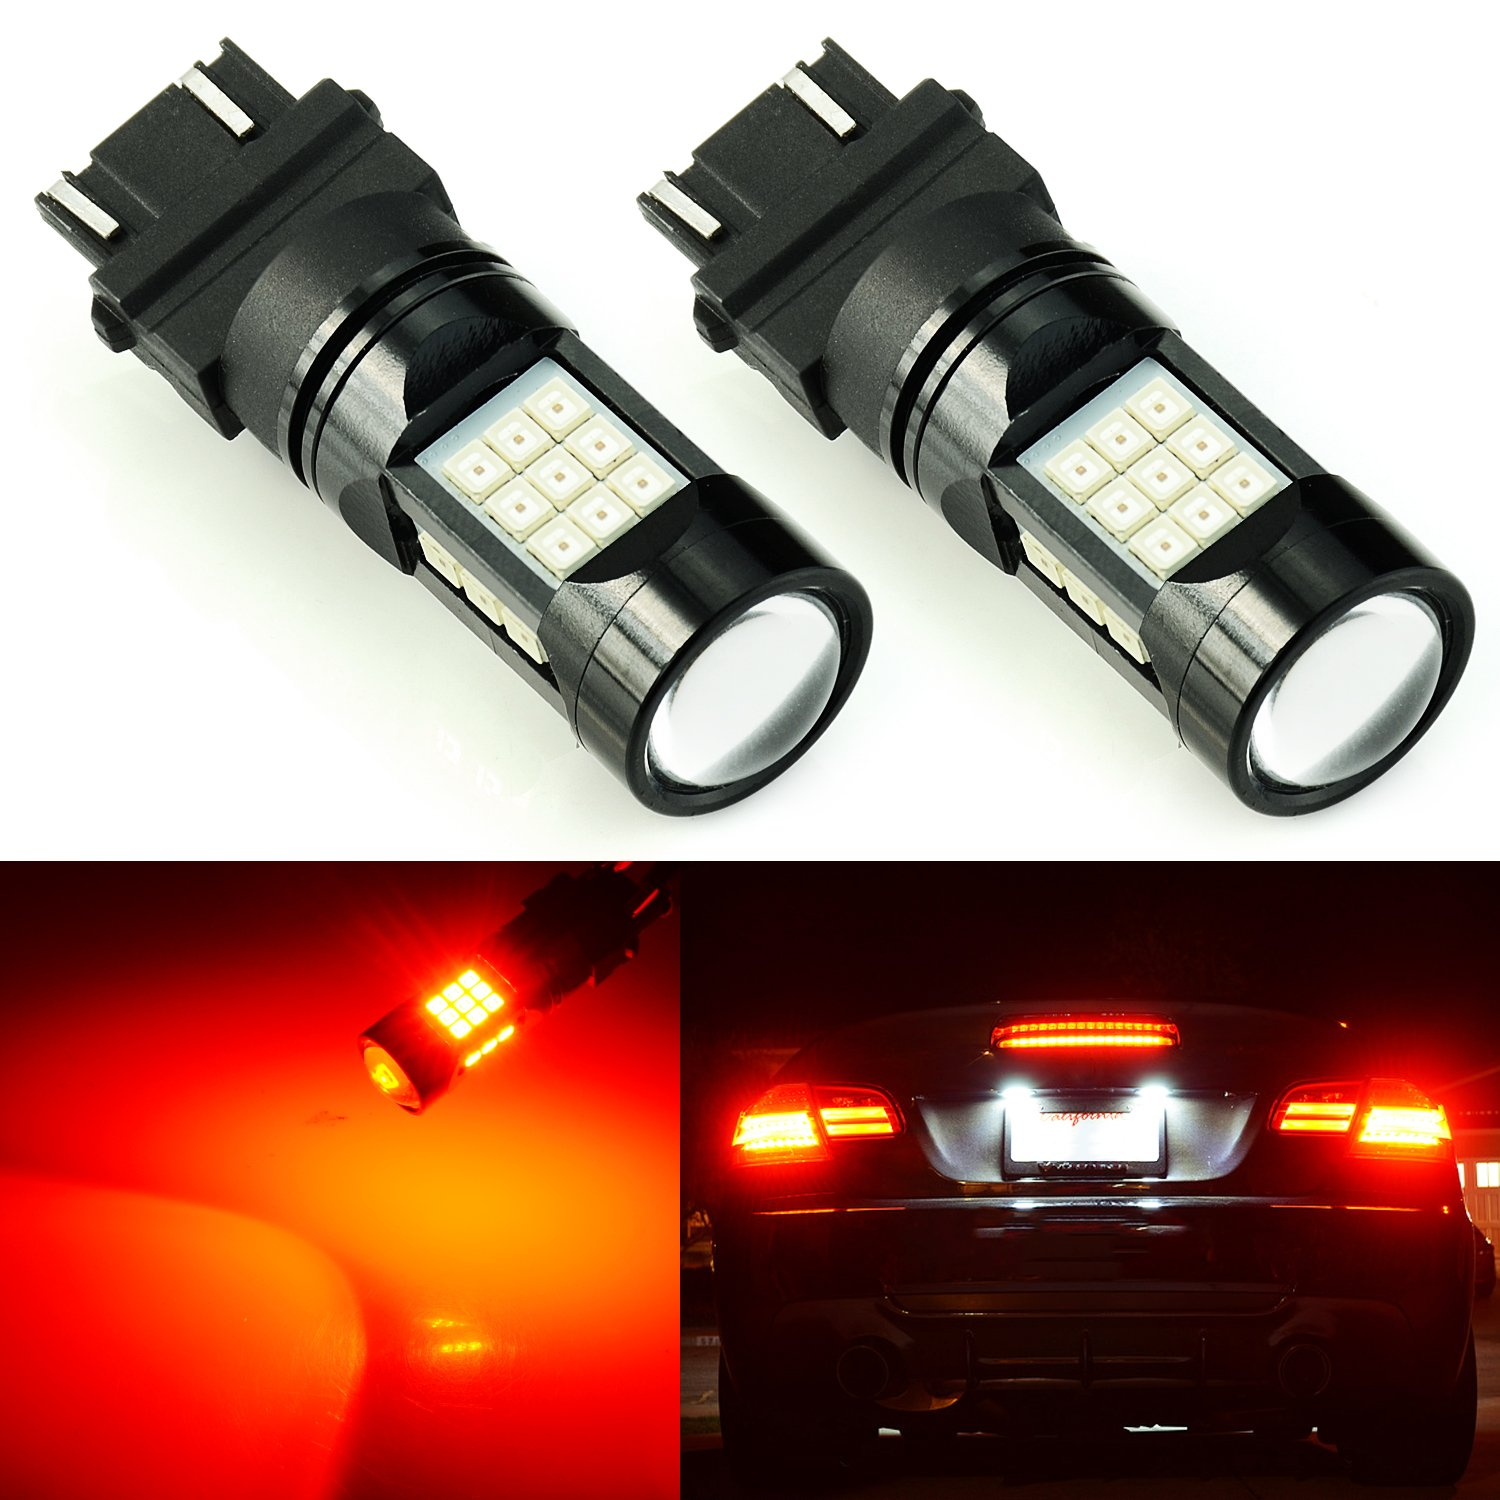 JDM ASTAR 2600 Lumens Extremely Bright PX Chips 3056 3156 3057 3157 4057 4157 LED Bulbs with Projector, Amber Yellow